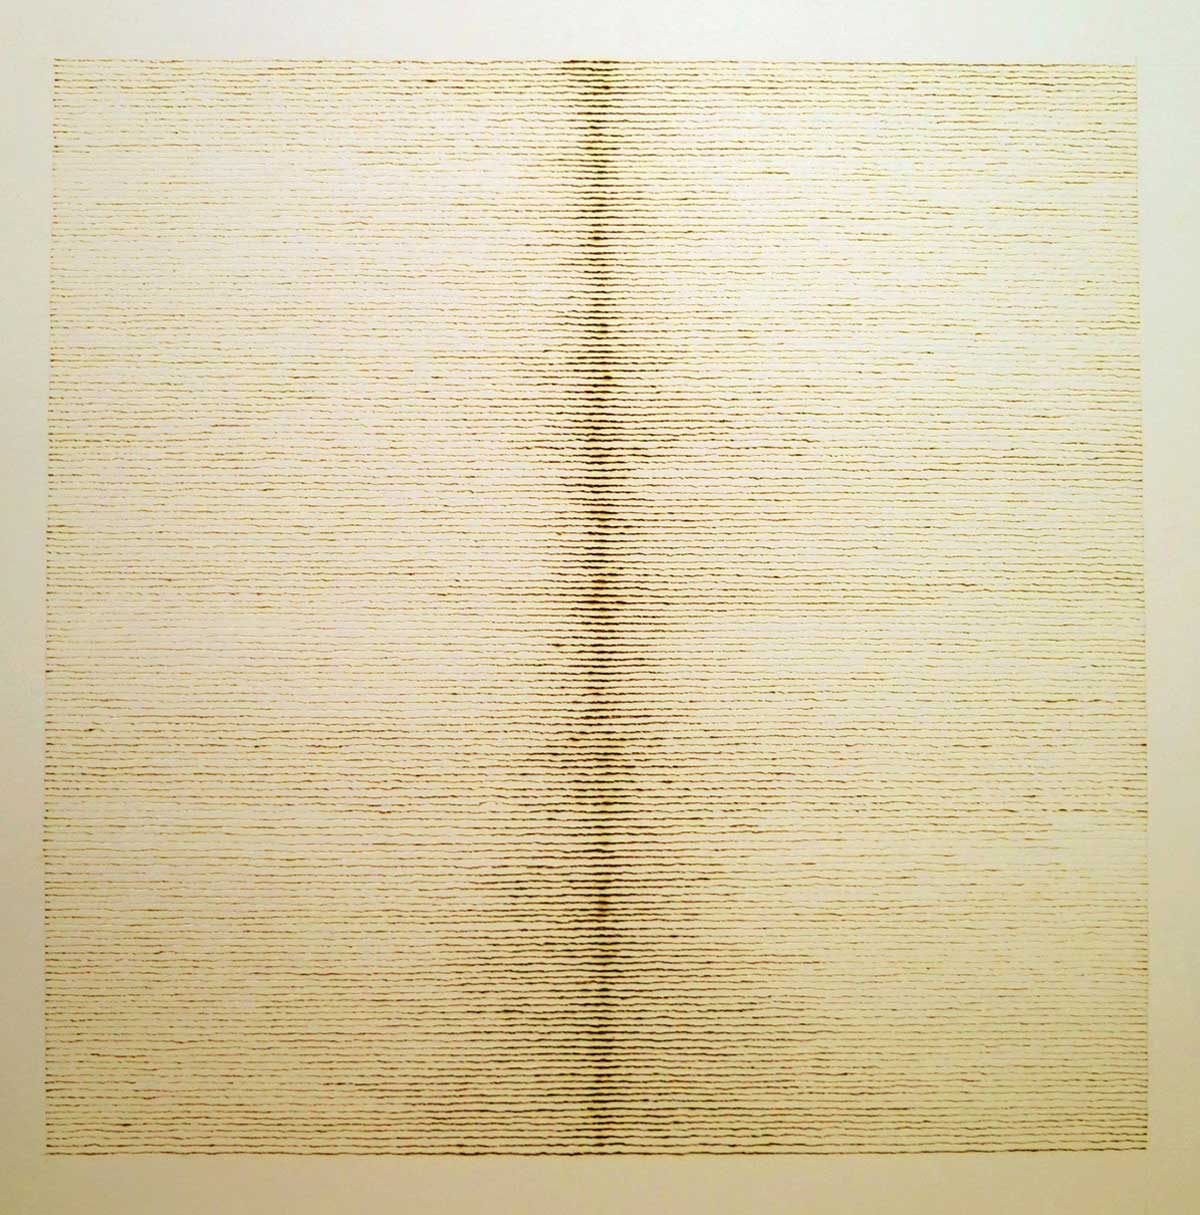 Burning Light, The Heat of the Day, 2015, burnt line drawing on paper, 30 x 30 cm